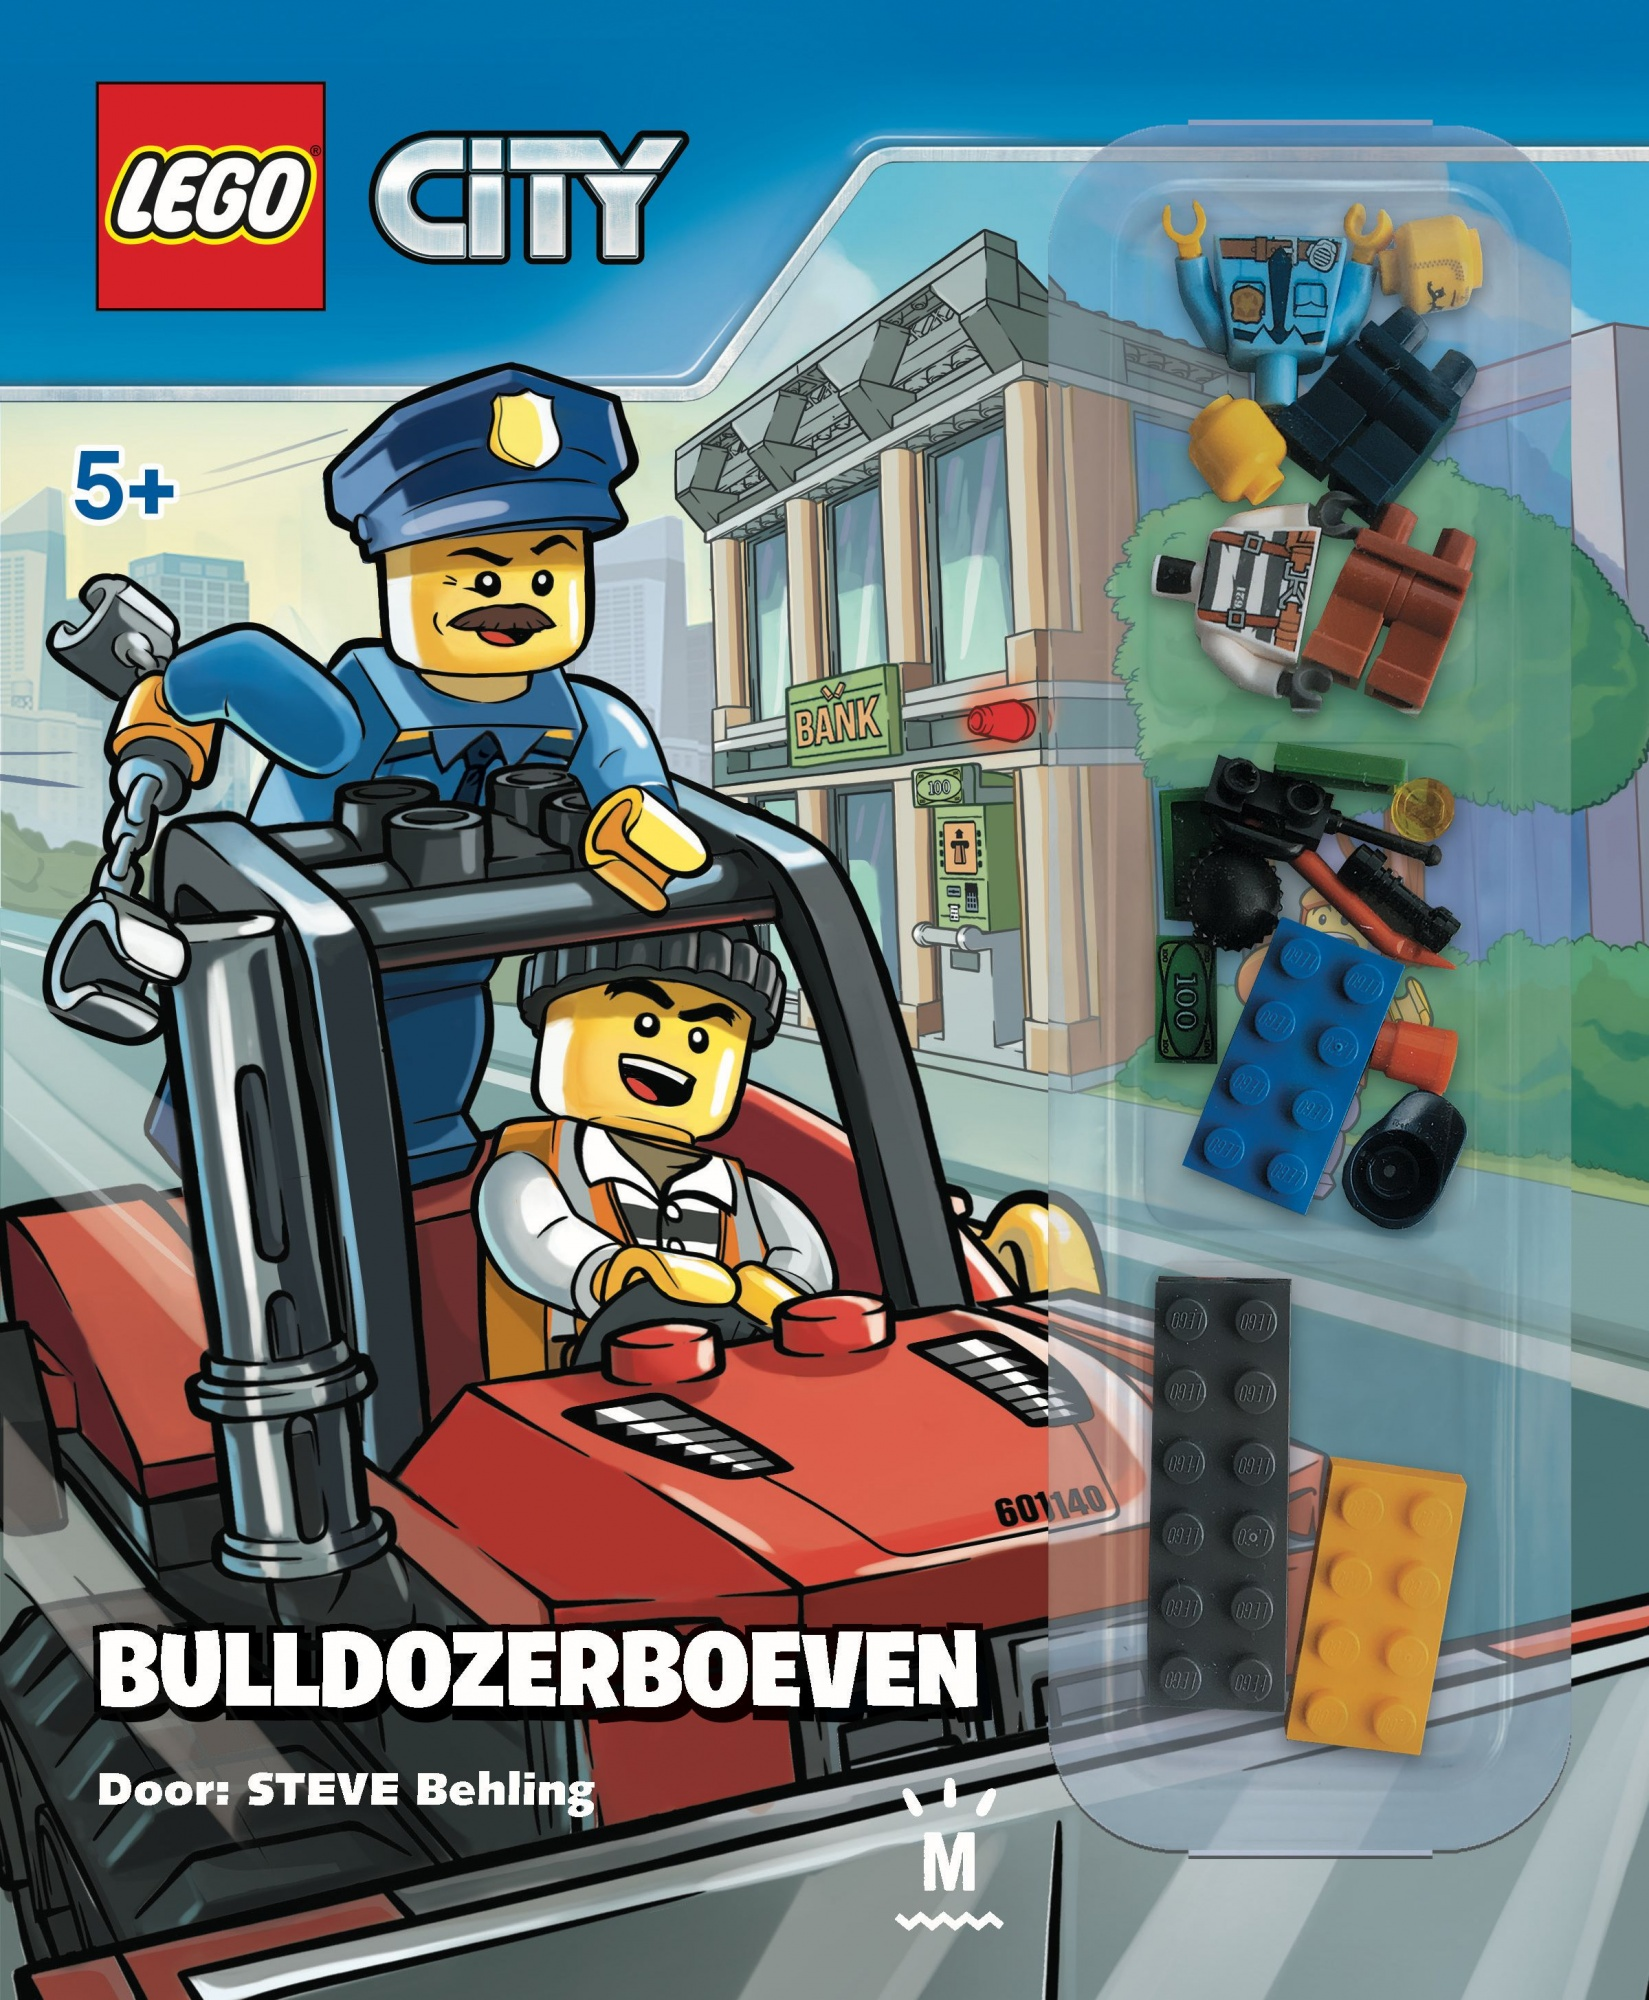 Lego City Bulldozerboeven Book Internet Toys